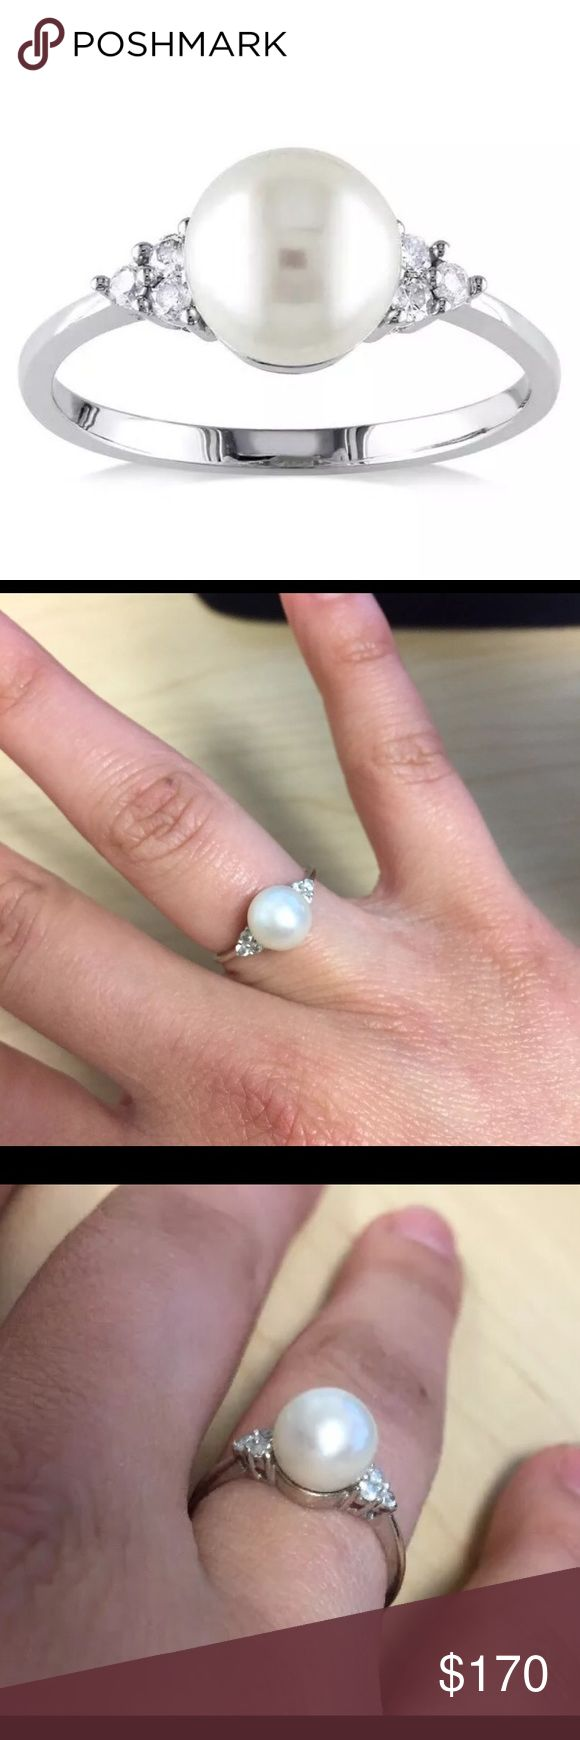 10kt White Gold Pearl Ring